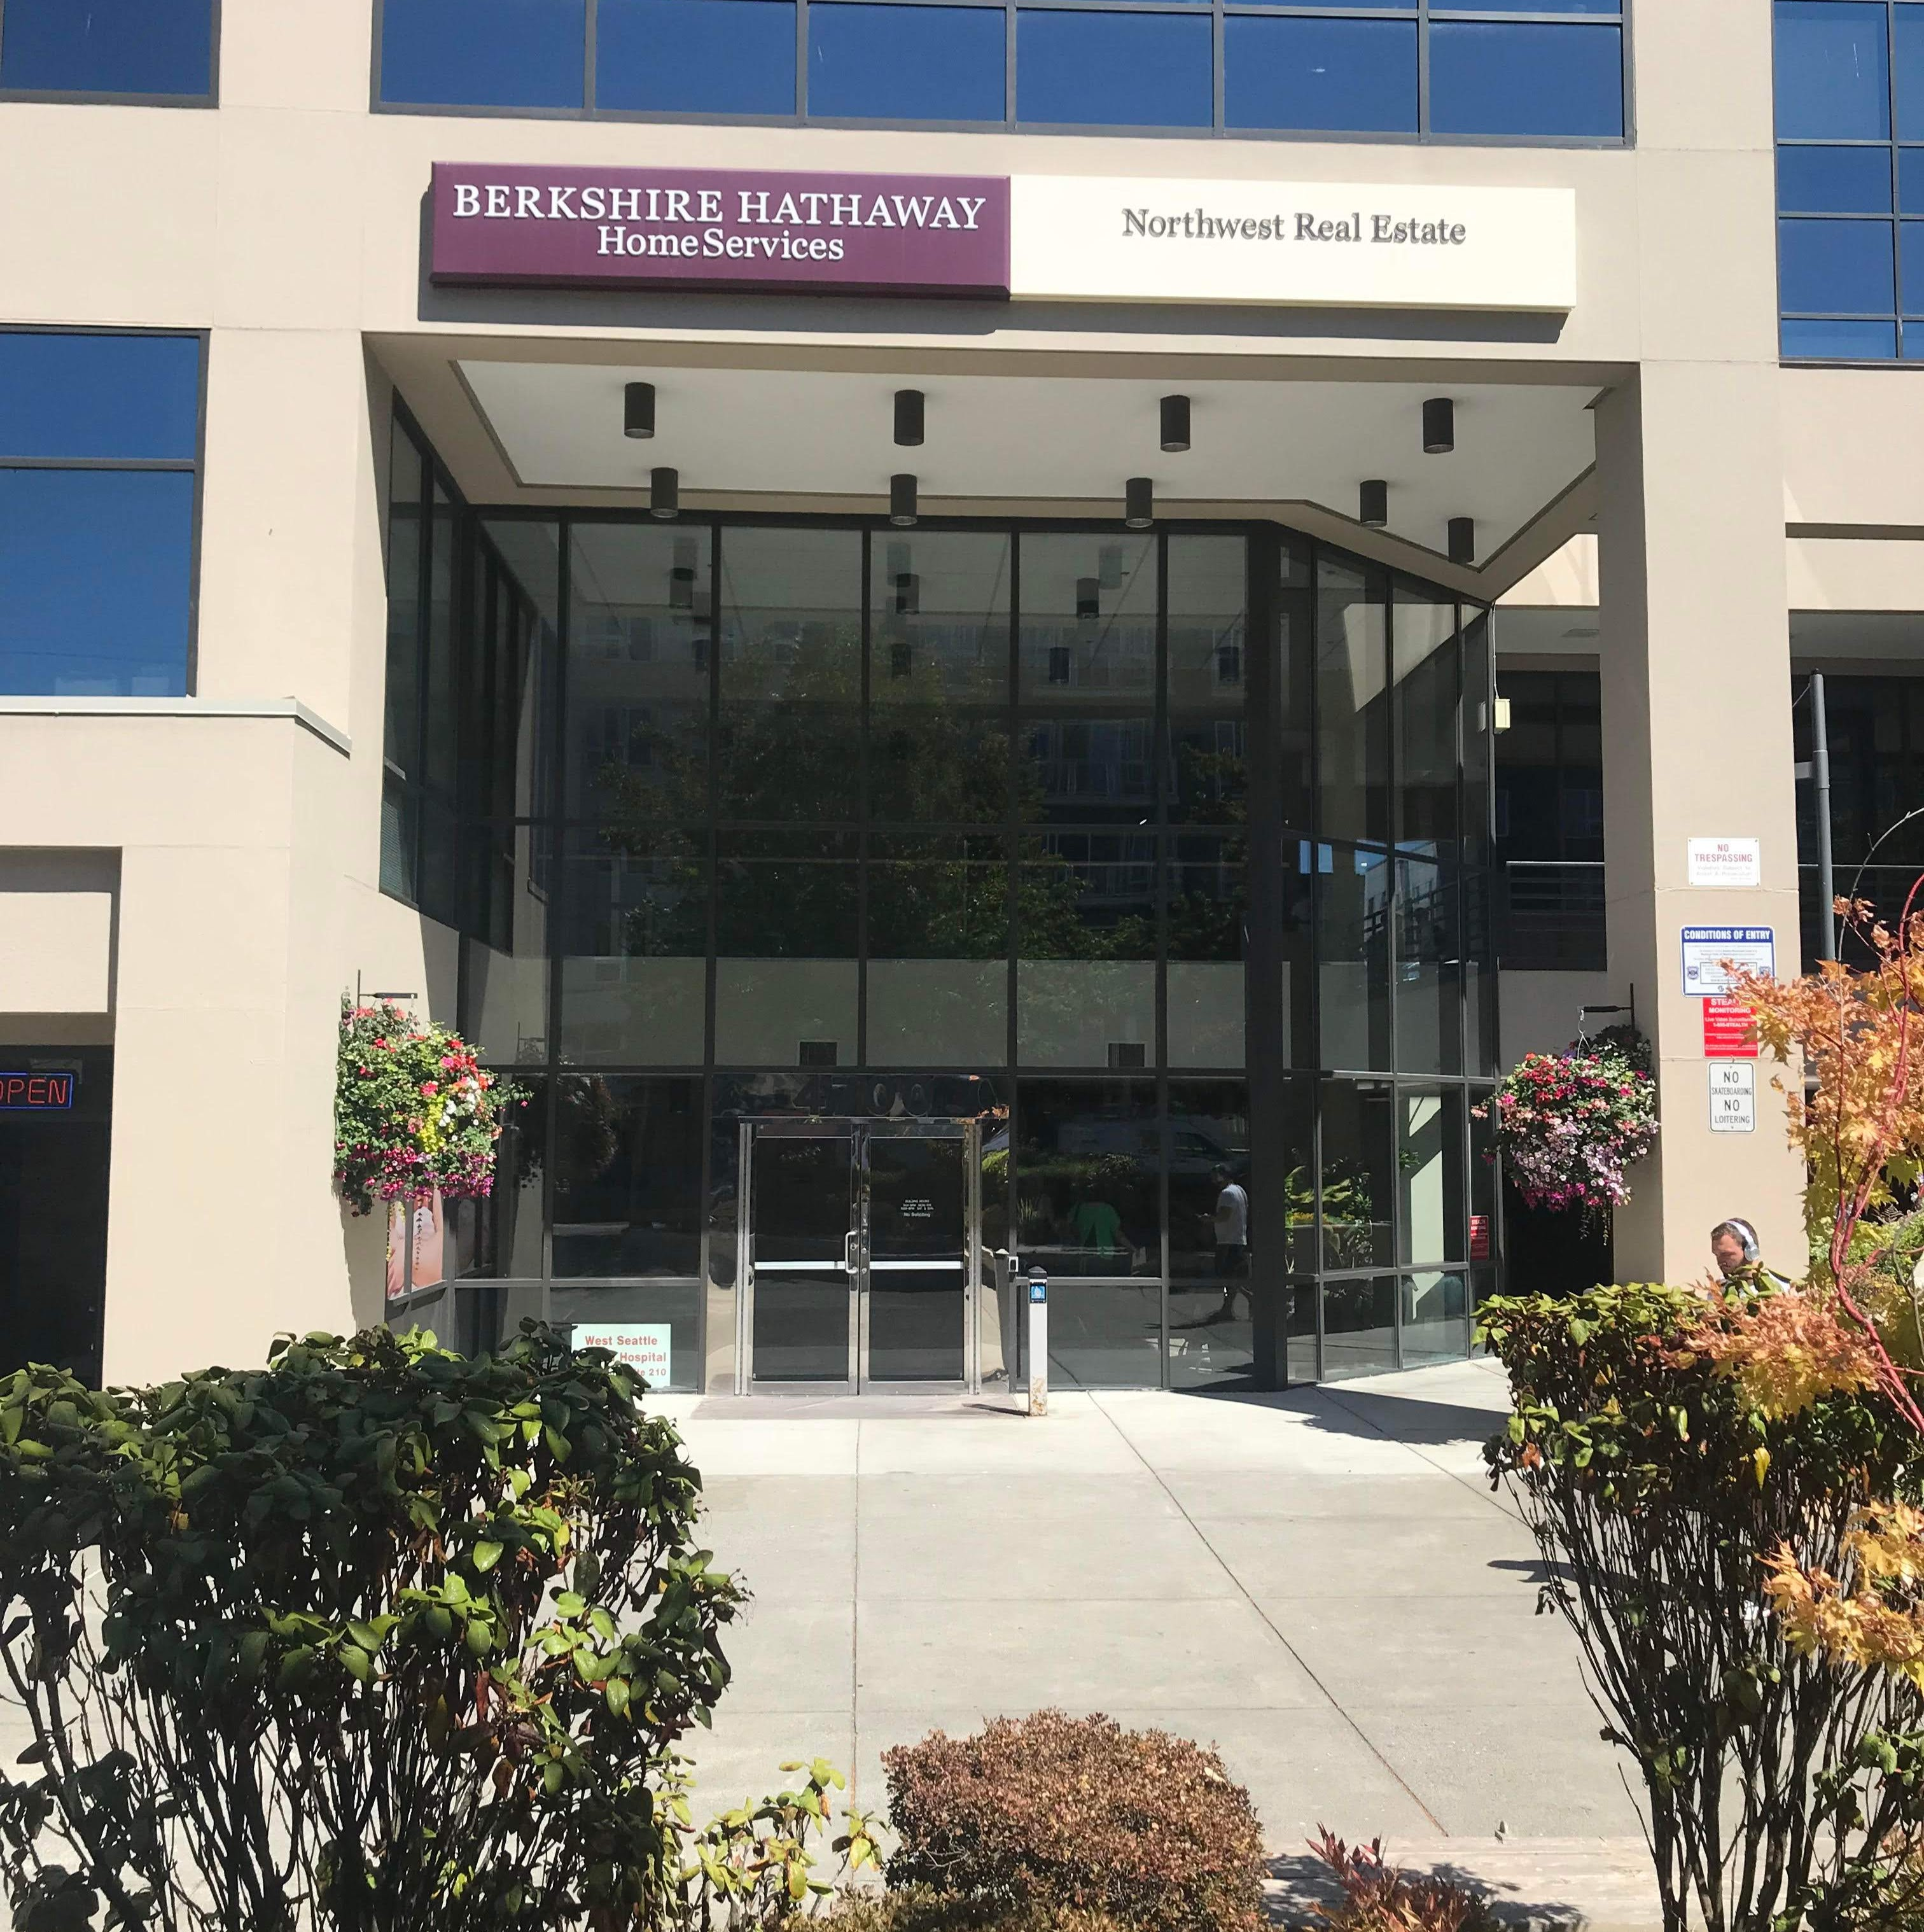 Berkshire Hathaway HomeServices North West Real Estate - West Seattle | 4700 42nd Ave SW #600, Seattle, WA, 98116 | +1 (206) 932-4500